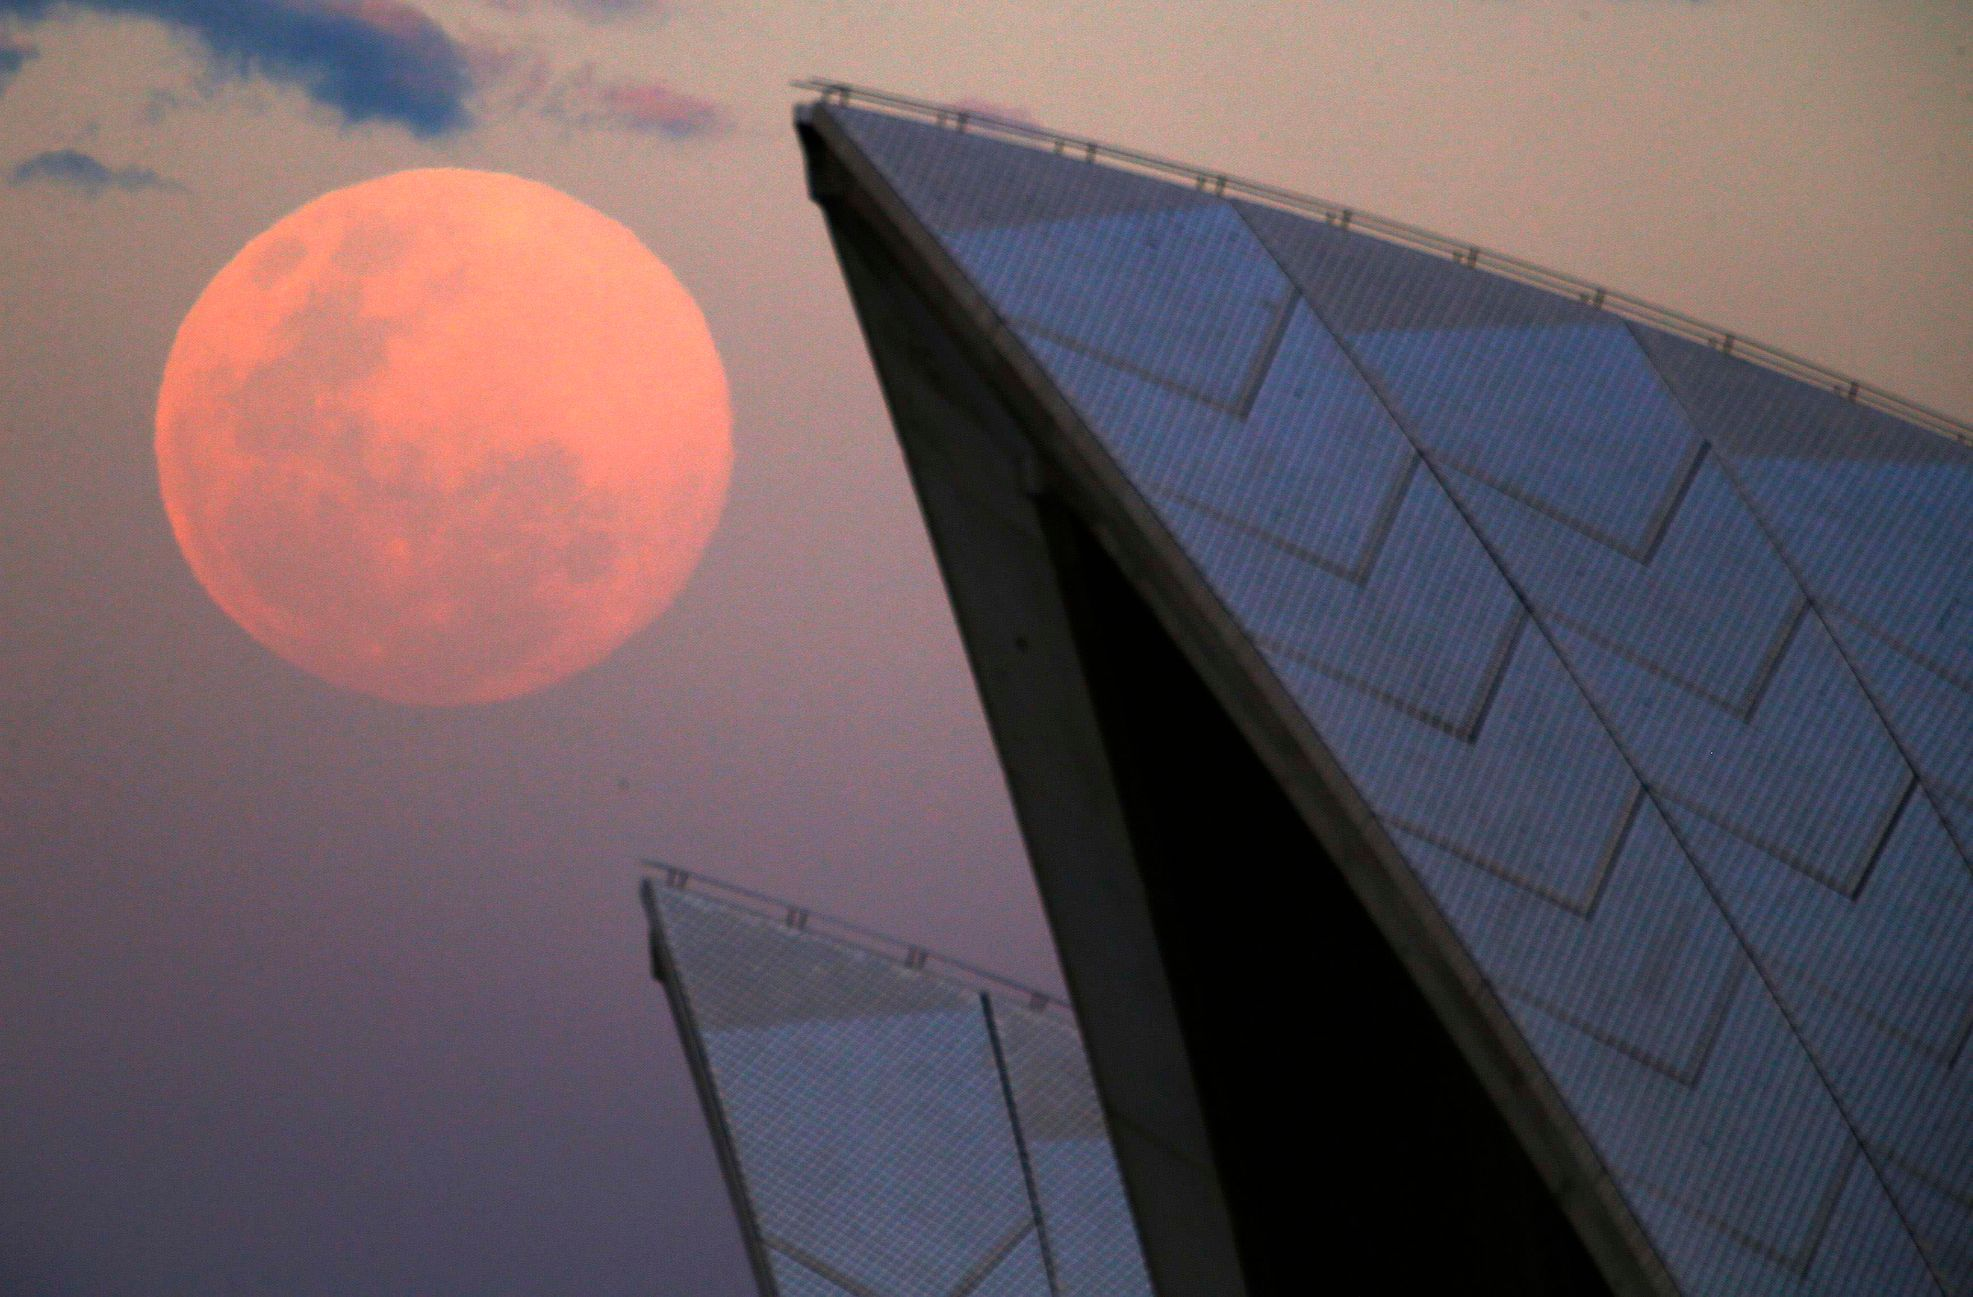 A supermoon rises behind the roof of the Sydney Opera House